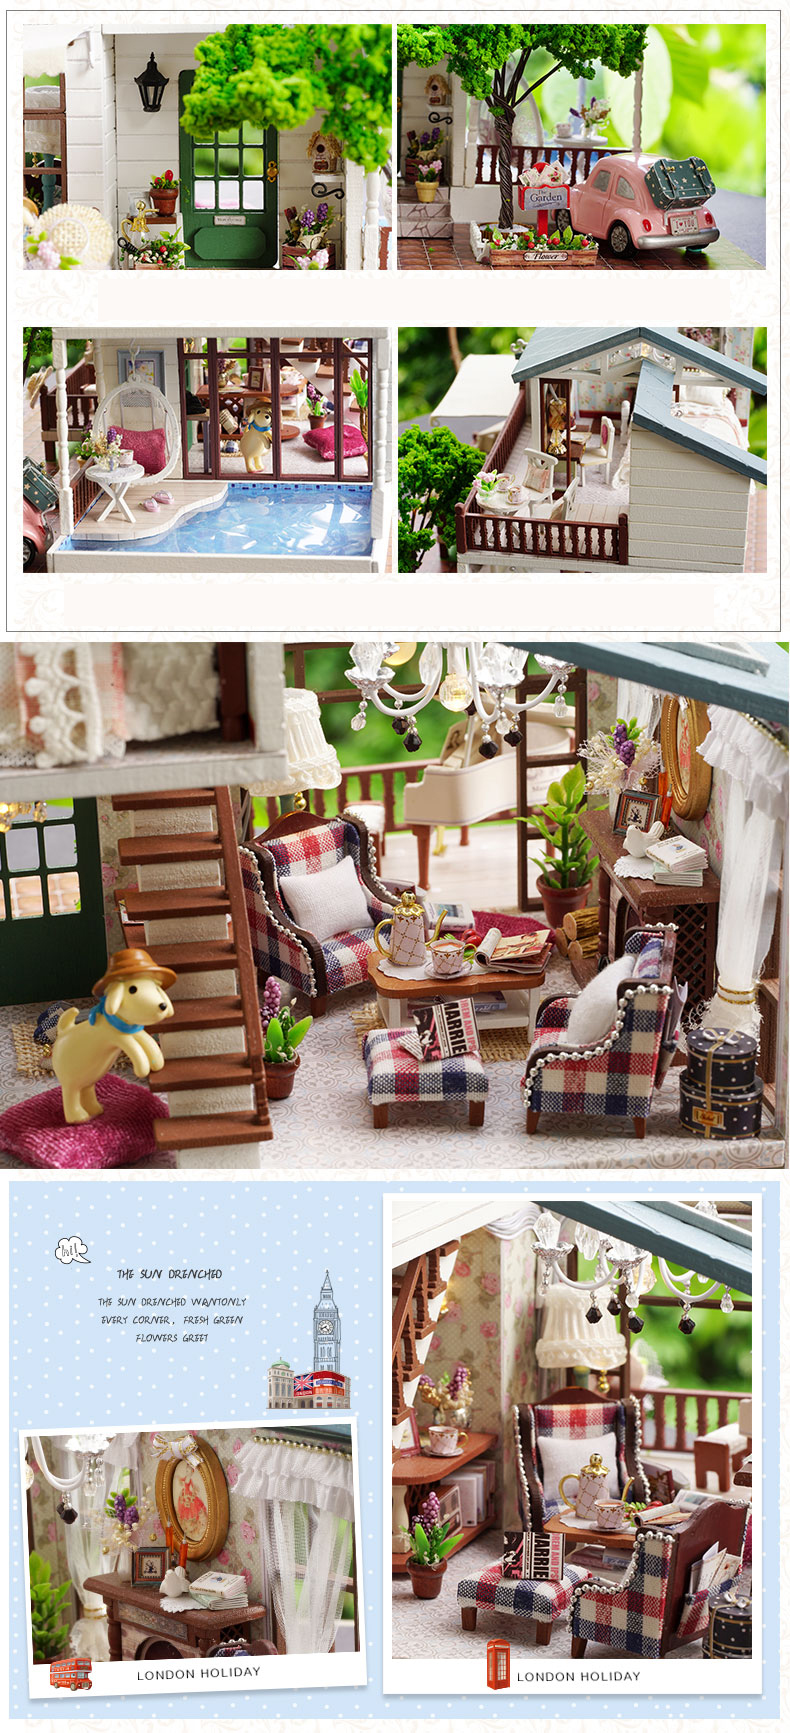 Cutebee London holiday DIY Dollhouse